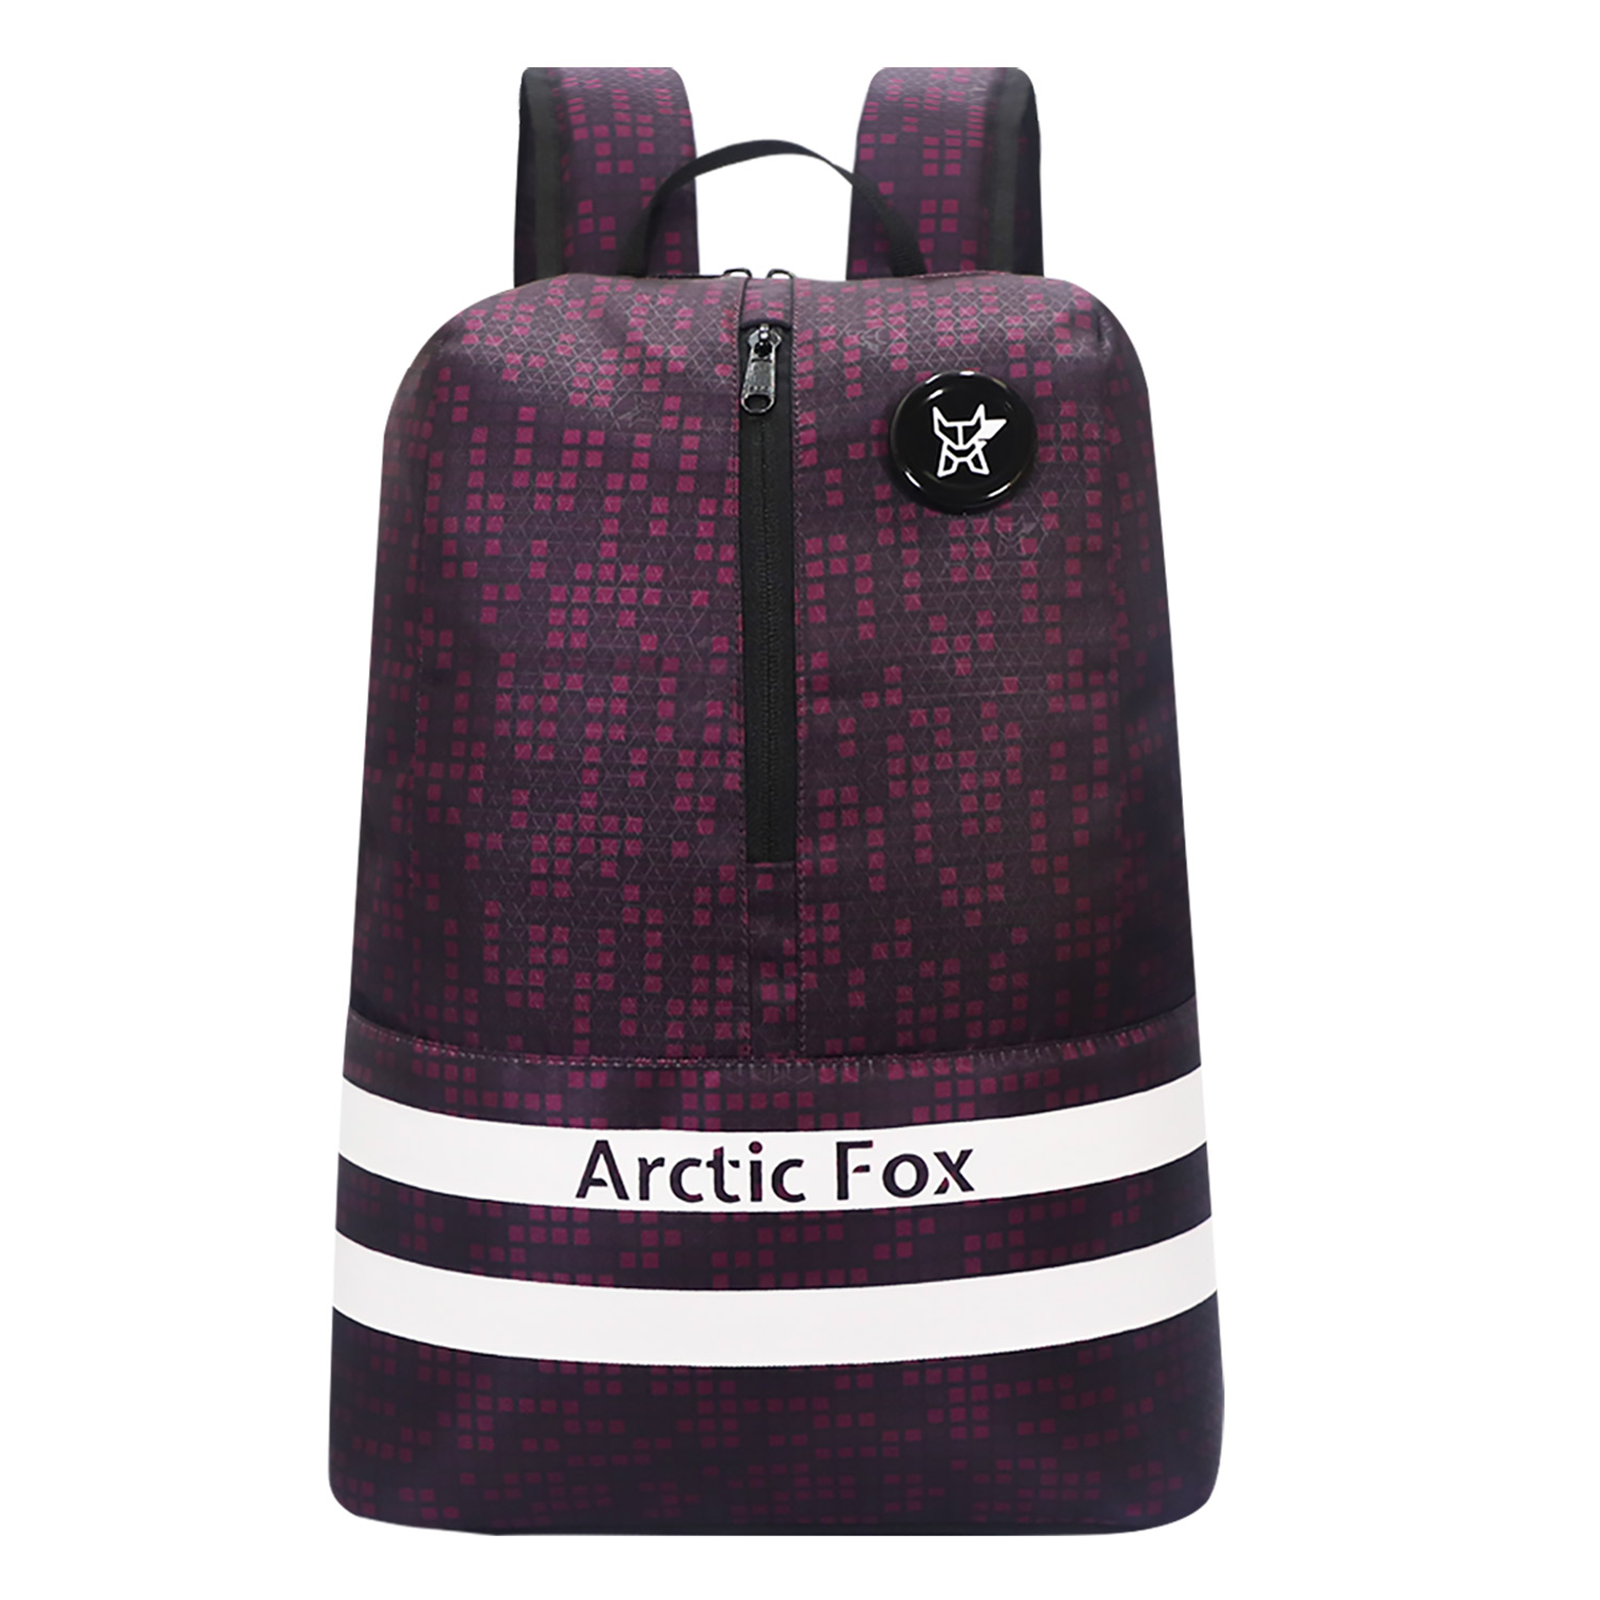 Arctic Fox Tuition 20 Litres PU Coated Polyester Backpack (1 Spacious Compartment, FTEBPKMARWZ028012, Maroon)_1